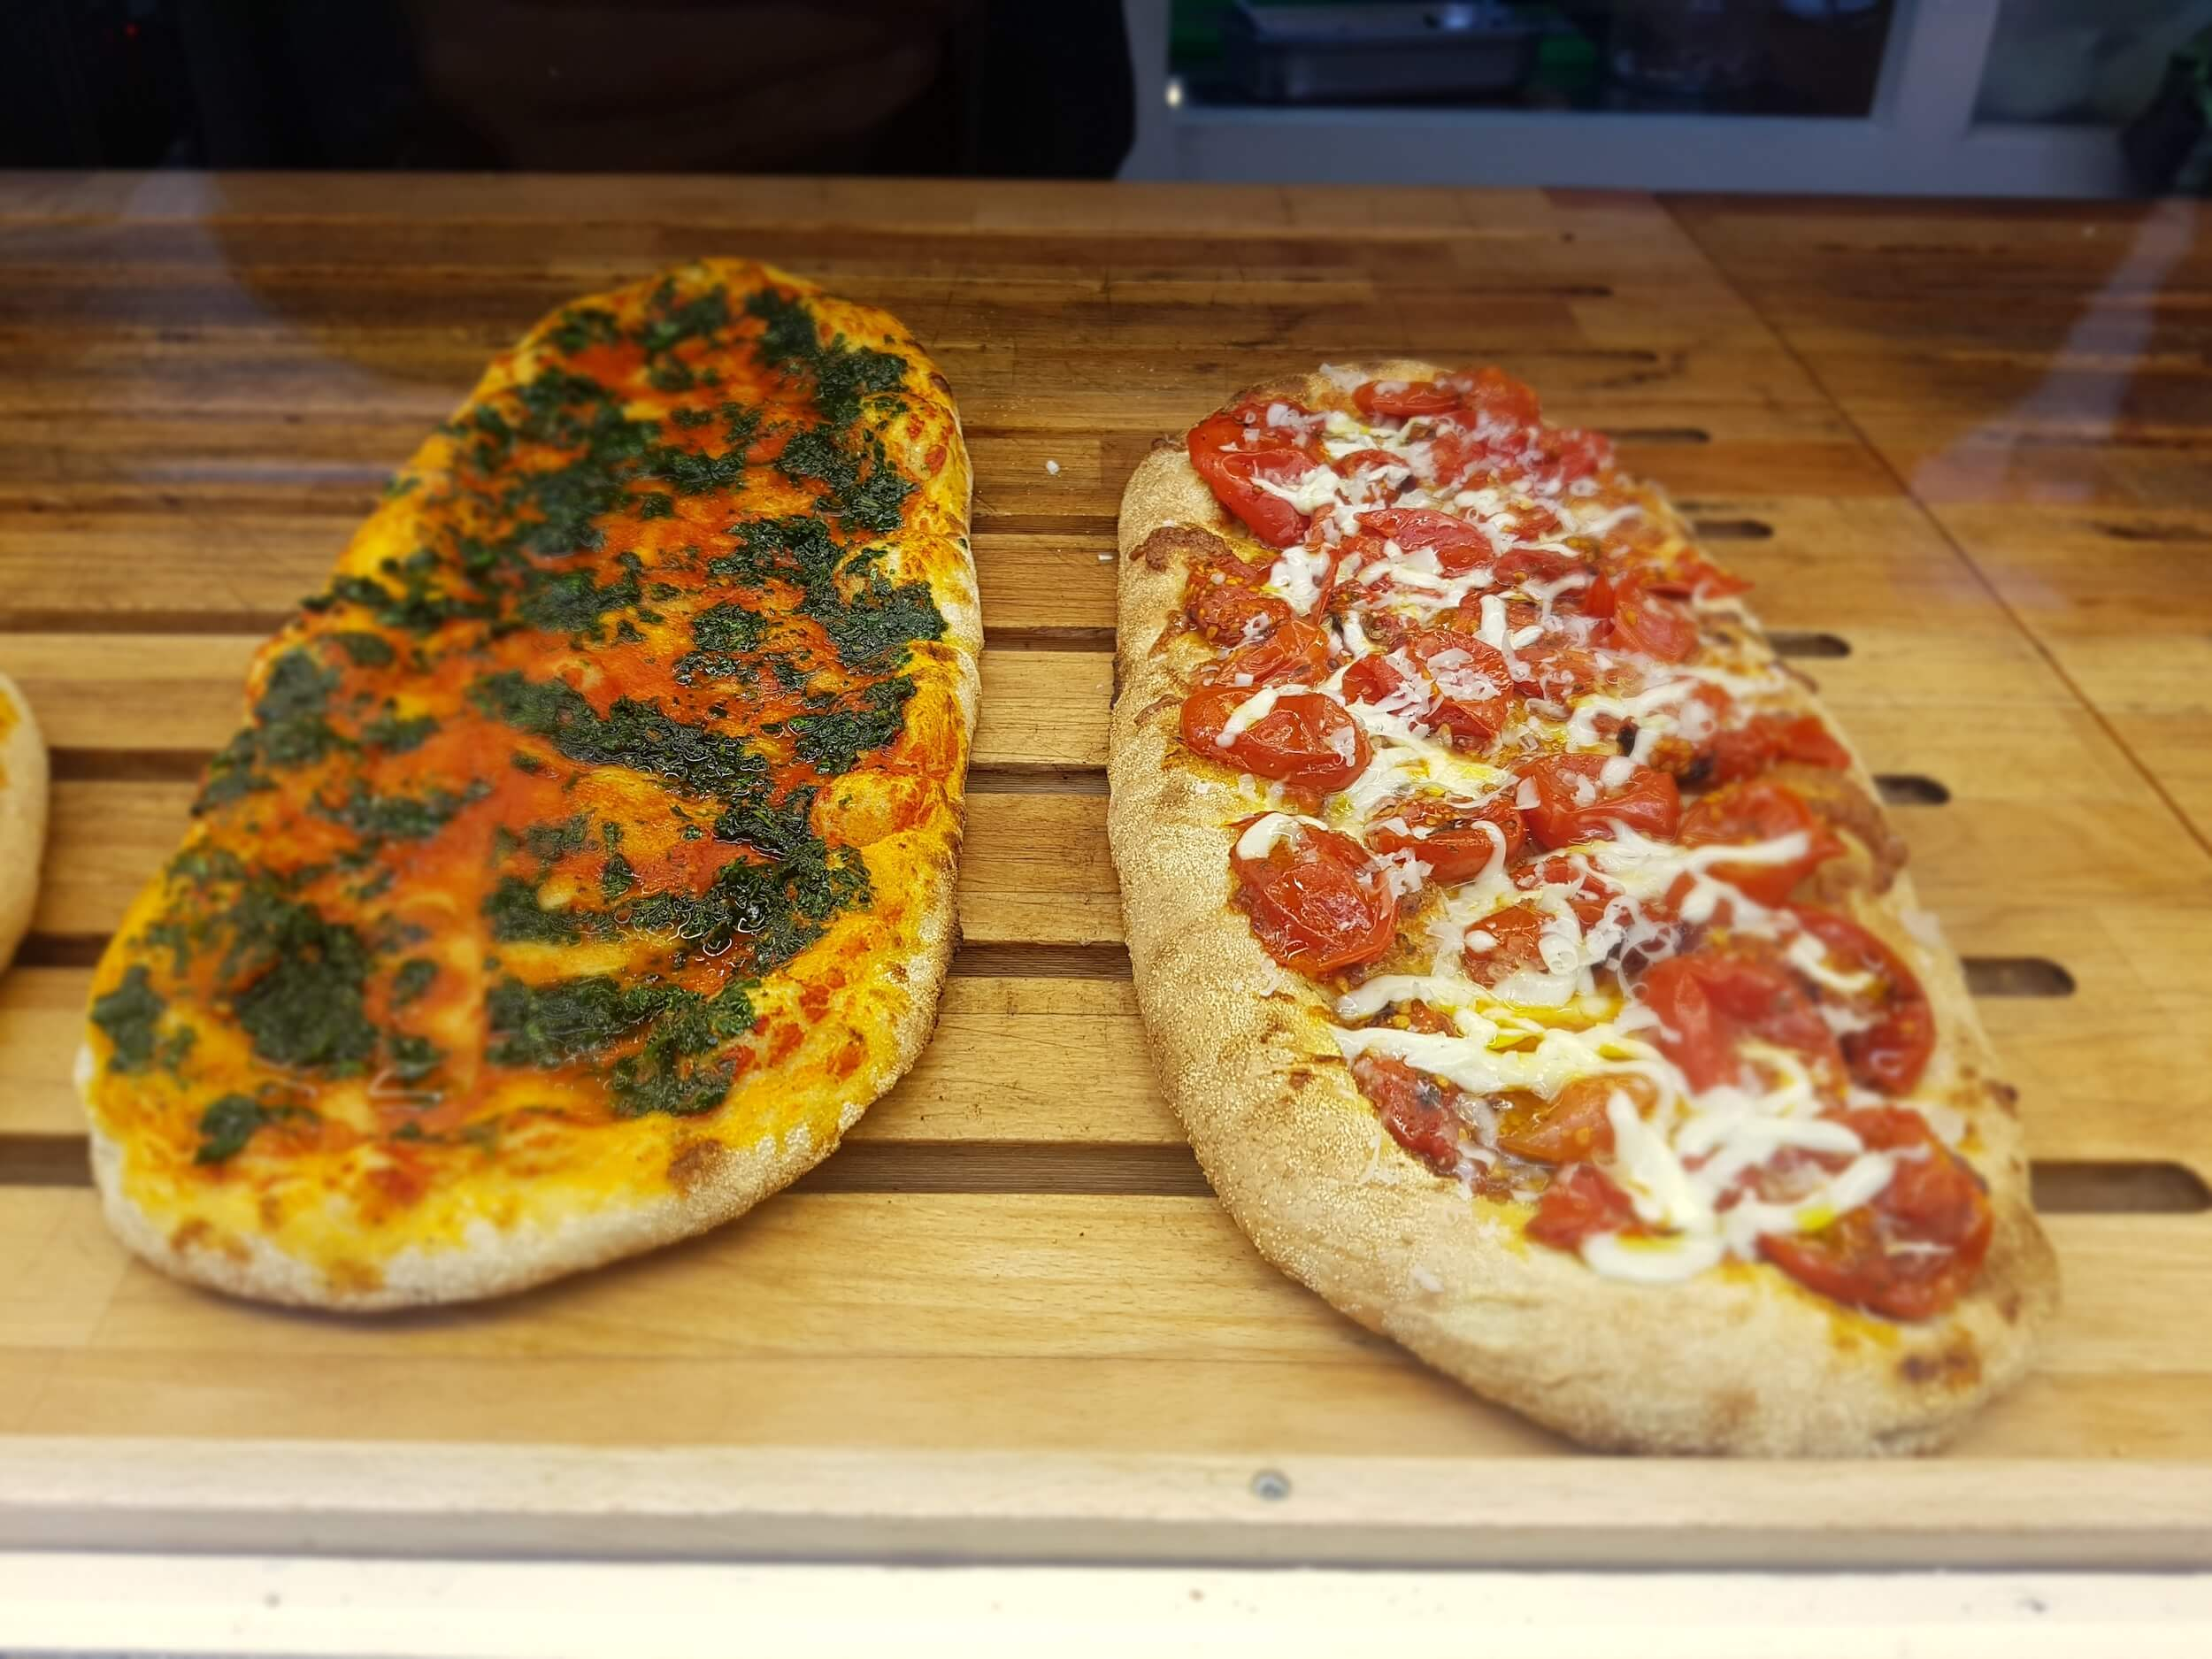 Two pizza's in display